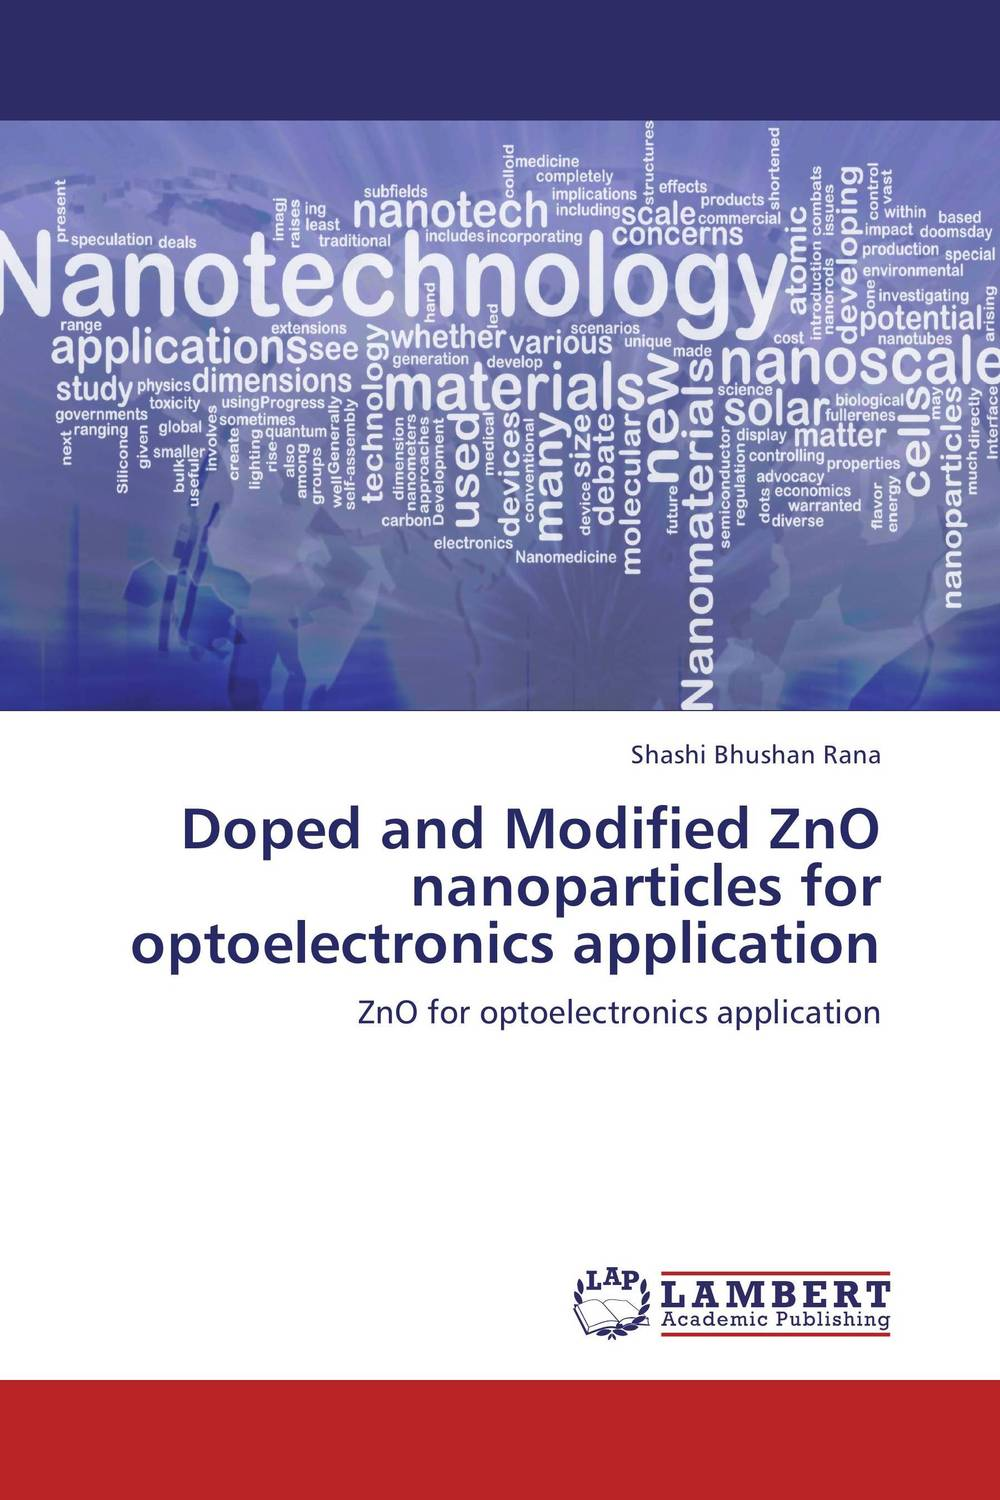 Doped and Modified ZnO nanoparticles for optoelectronics application ashish nautiyal and trilok chandra upadhyay vibrational pseudospin solutions of doped triglycine sulphate crystal